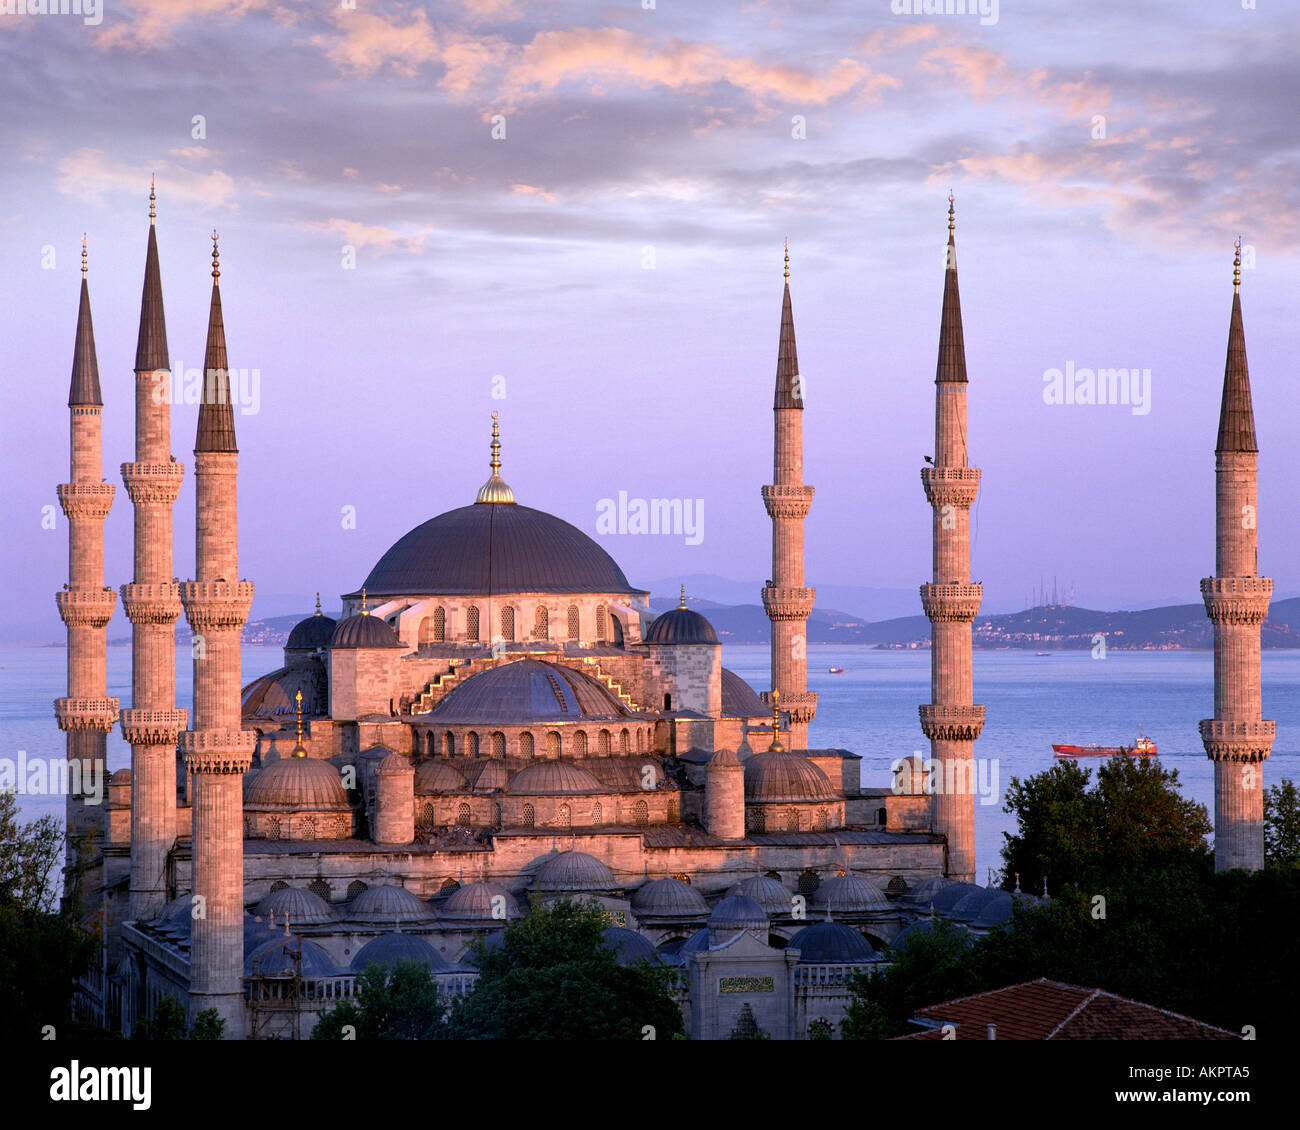 TY - ISTANBUL: The Blue Mosque - Stock Image